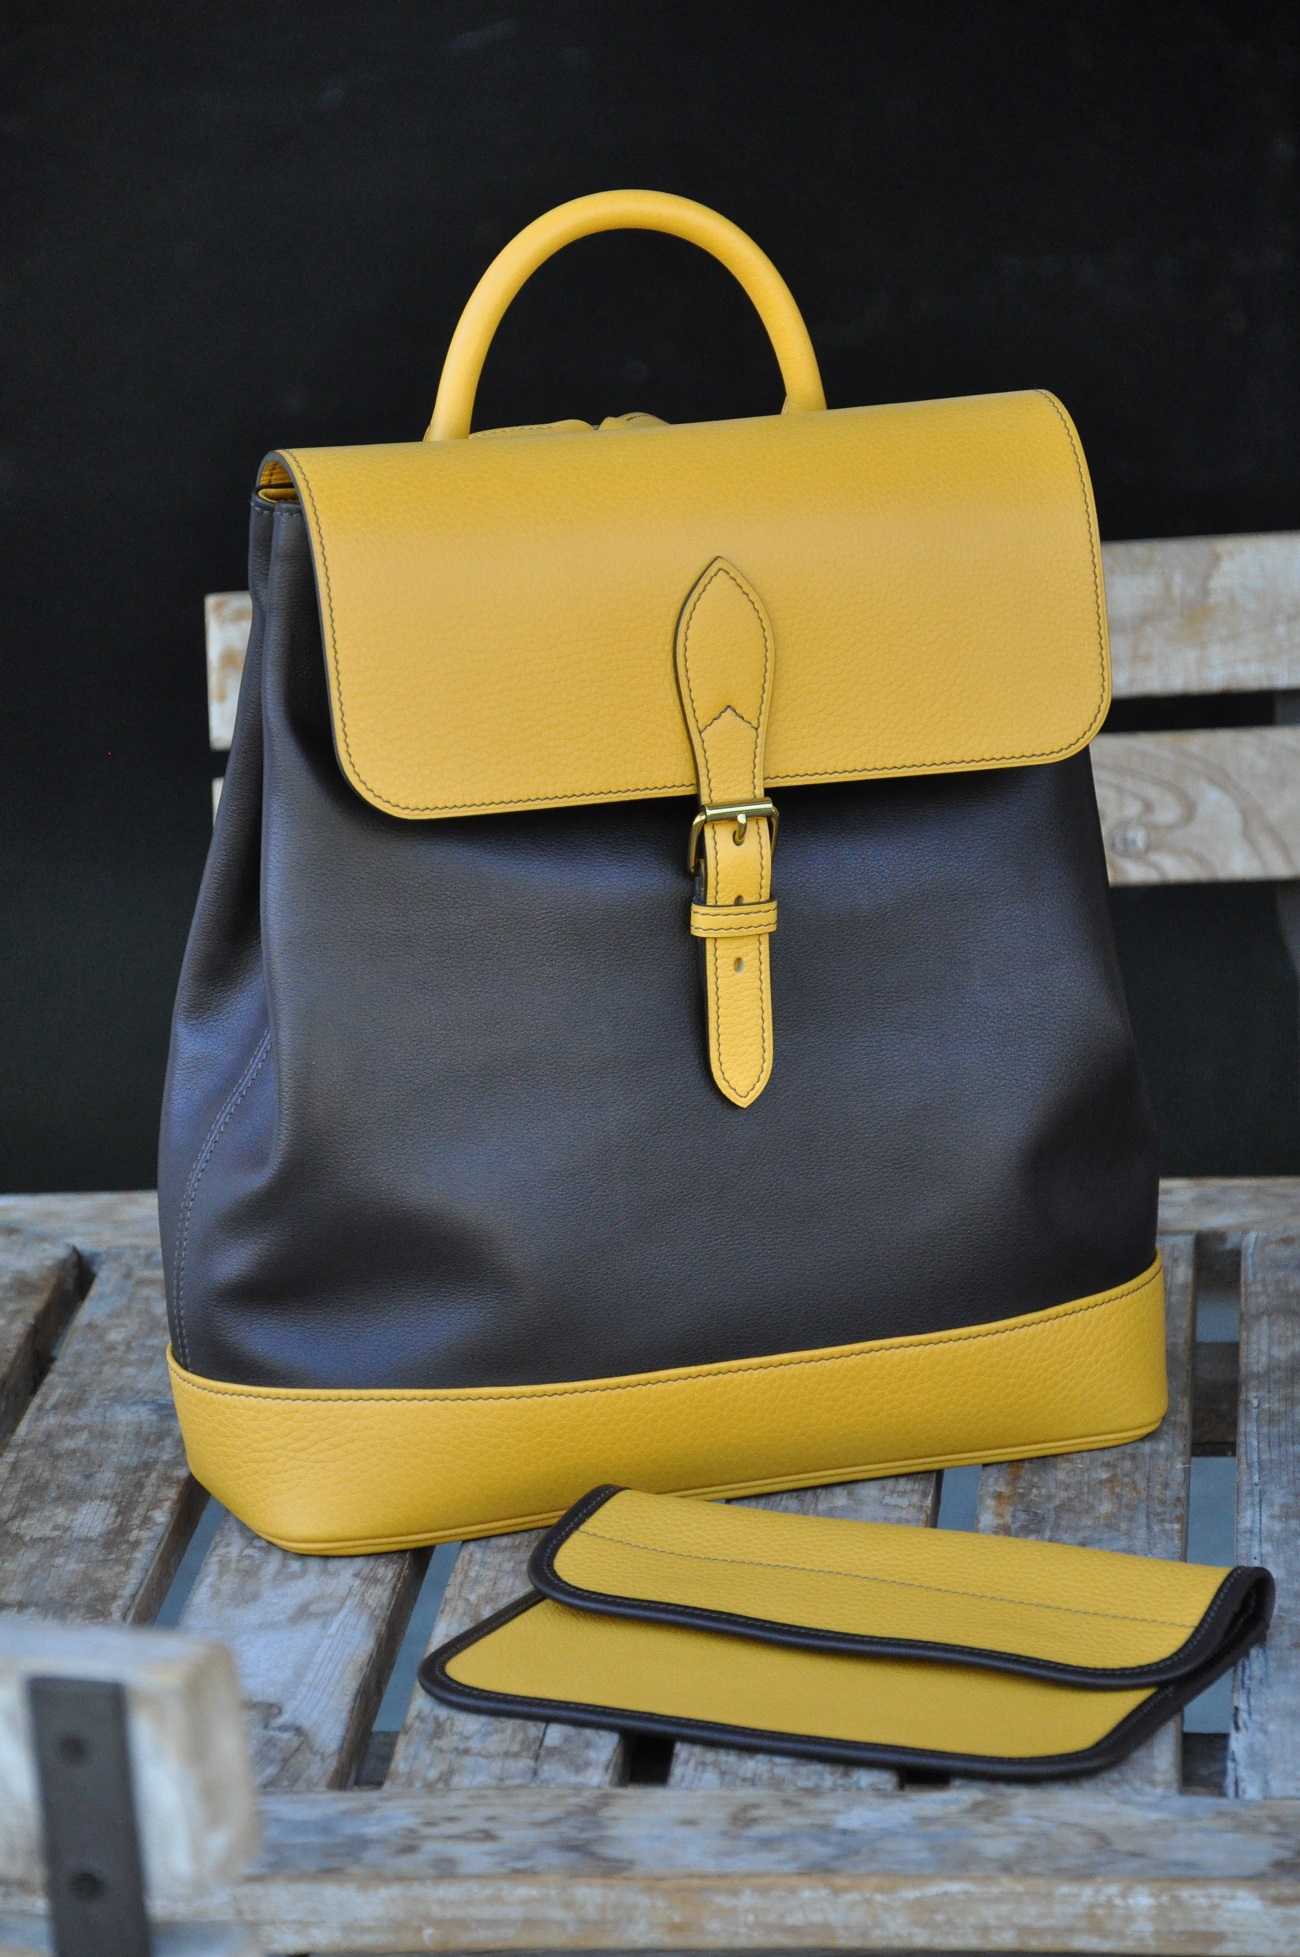 This back bag is made in yellow sunflower taurillon and brown calfskin, lined with brown cotton. It's a special order with his clutch bag. French savoir-faire by LE NOËN luxury leather goods craftsmen.